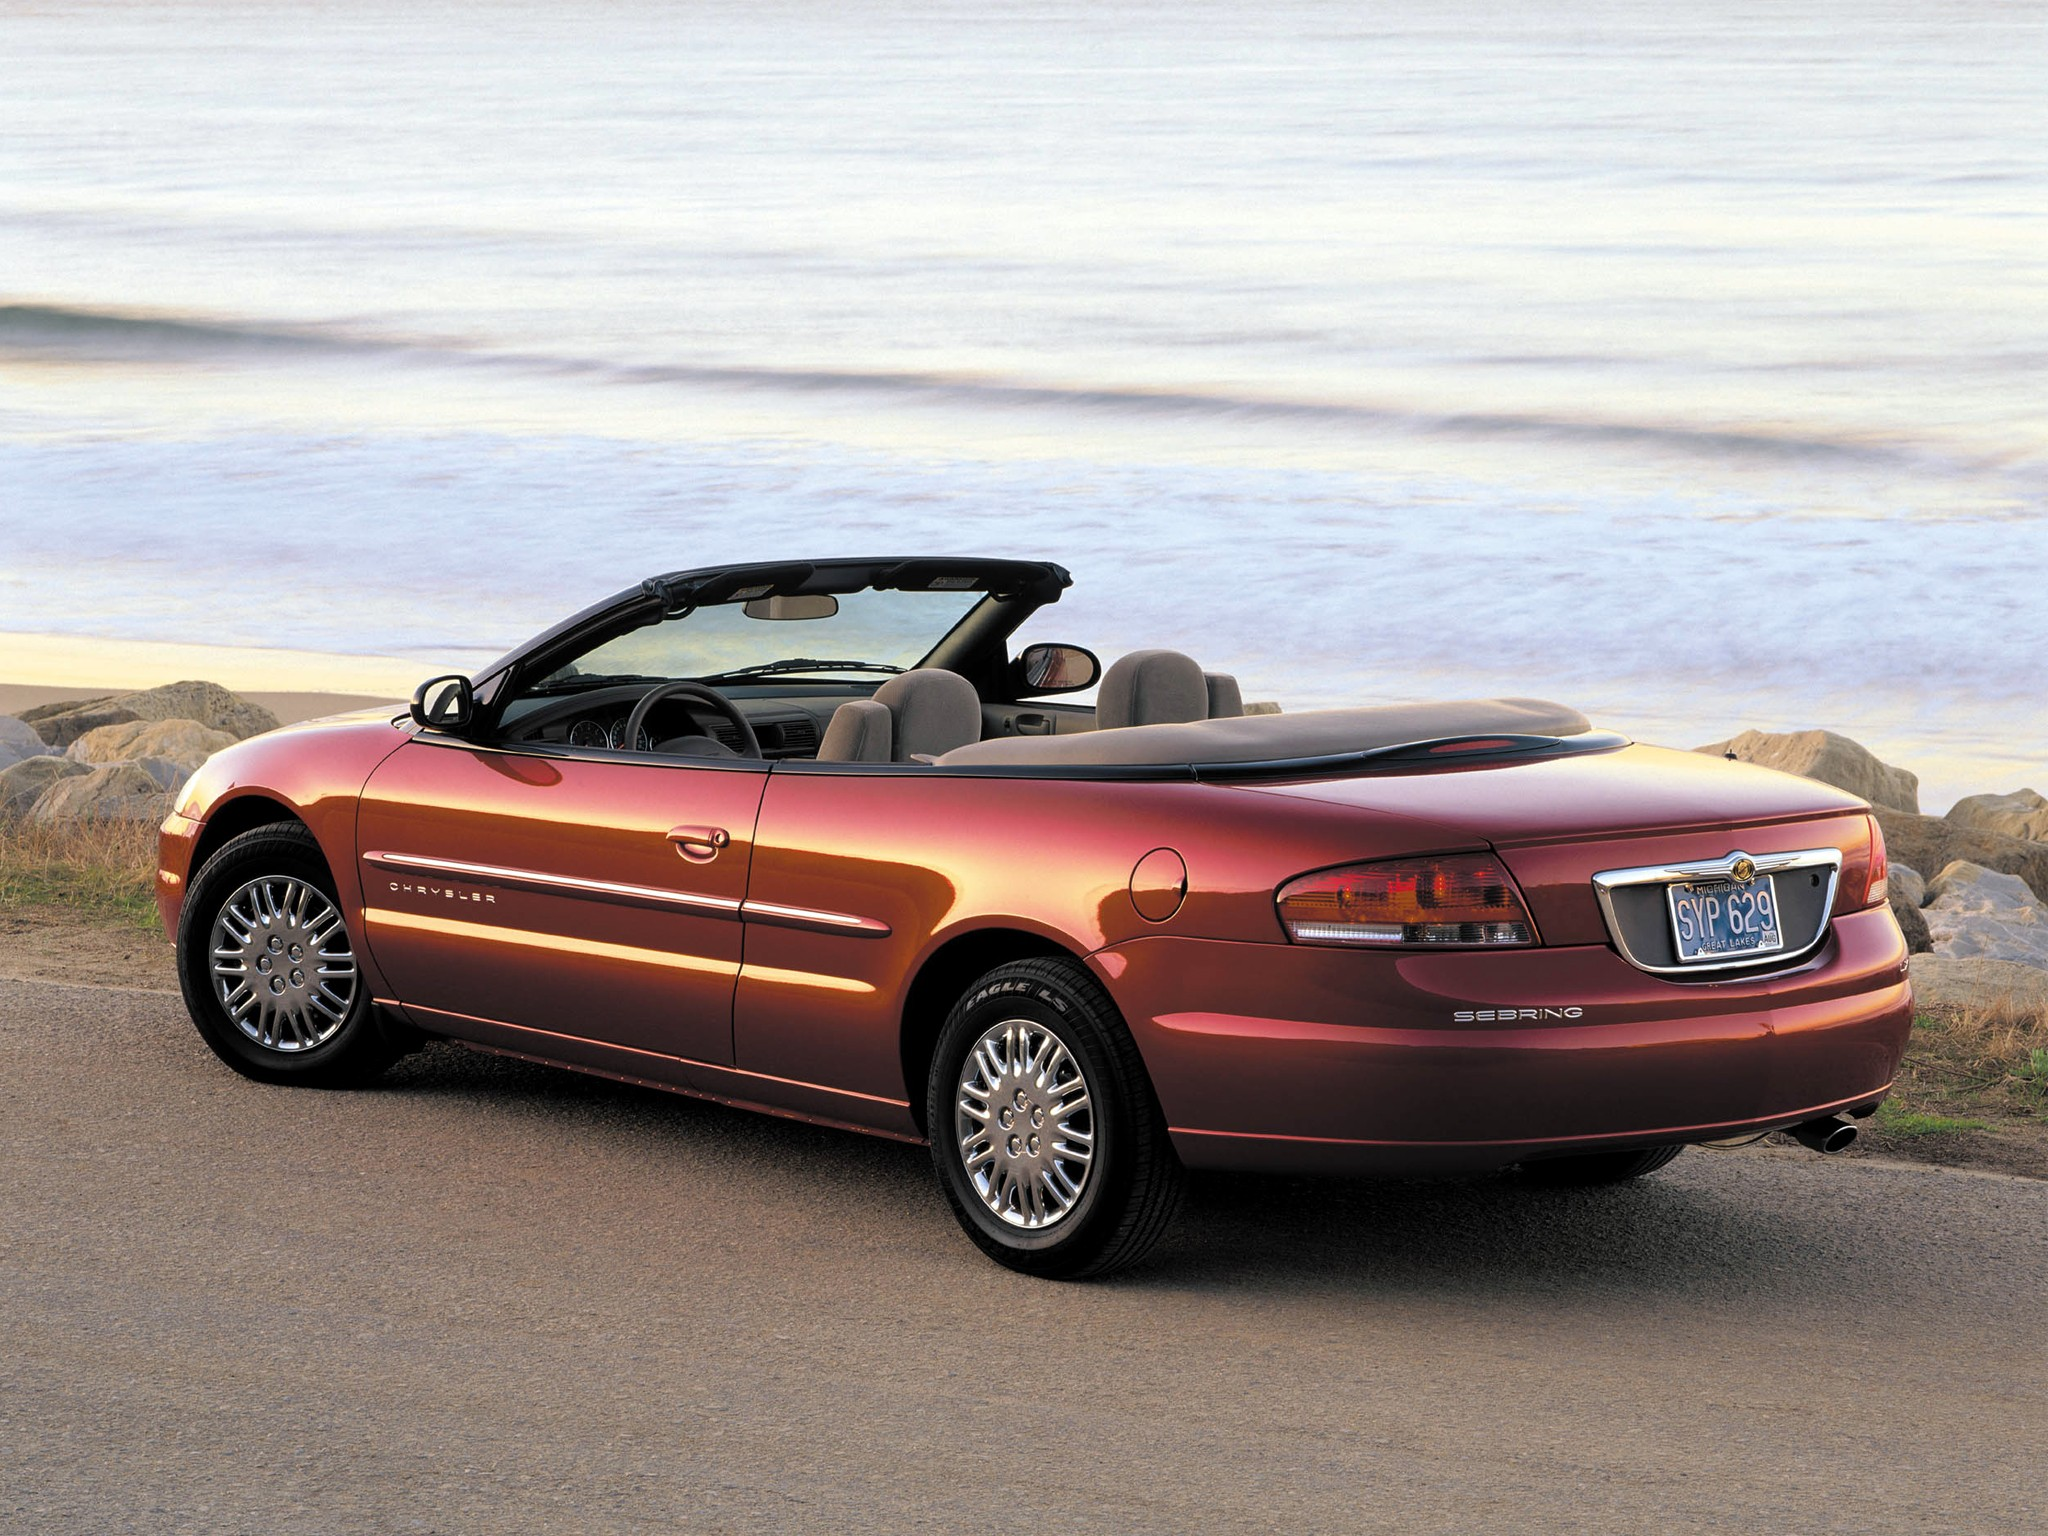 chrysler sebring convertible specs photos 2001 2002 2003 autoevolution. Black Bedroom Furniture Sets. Home Design Ideas